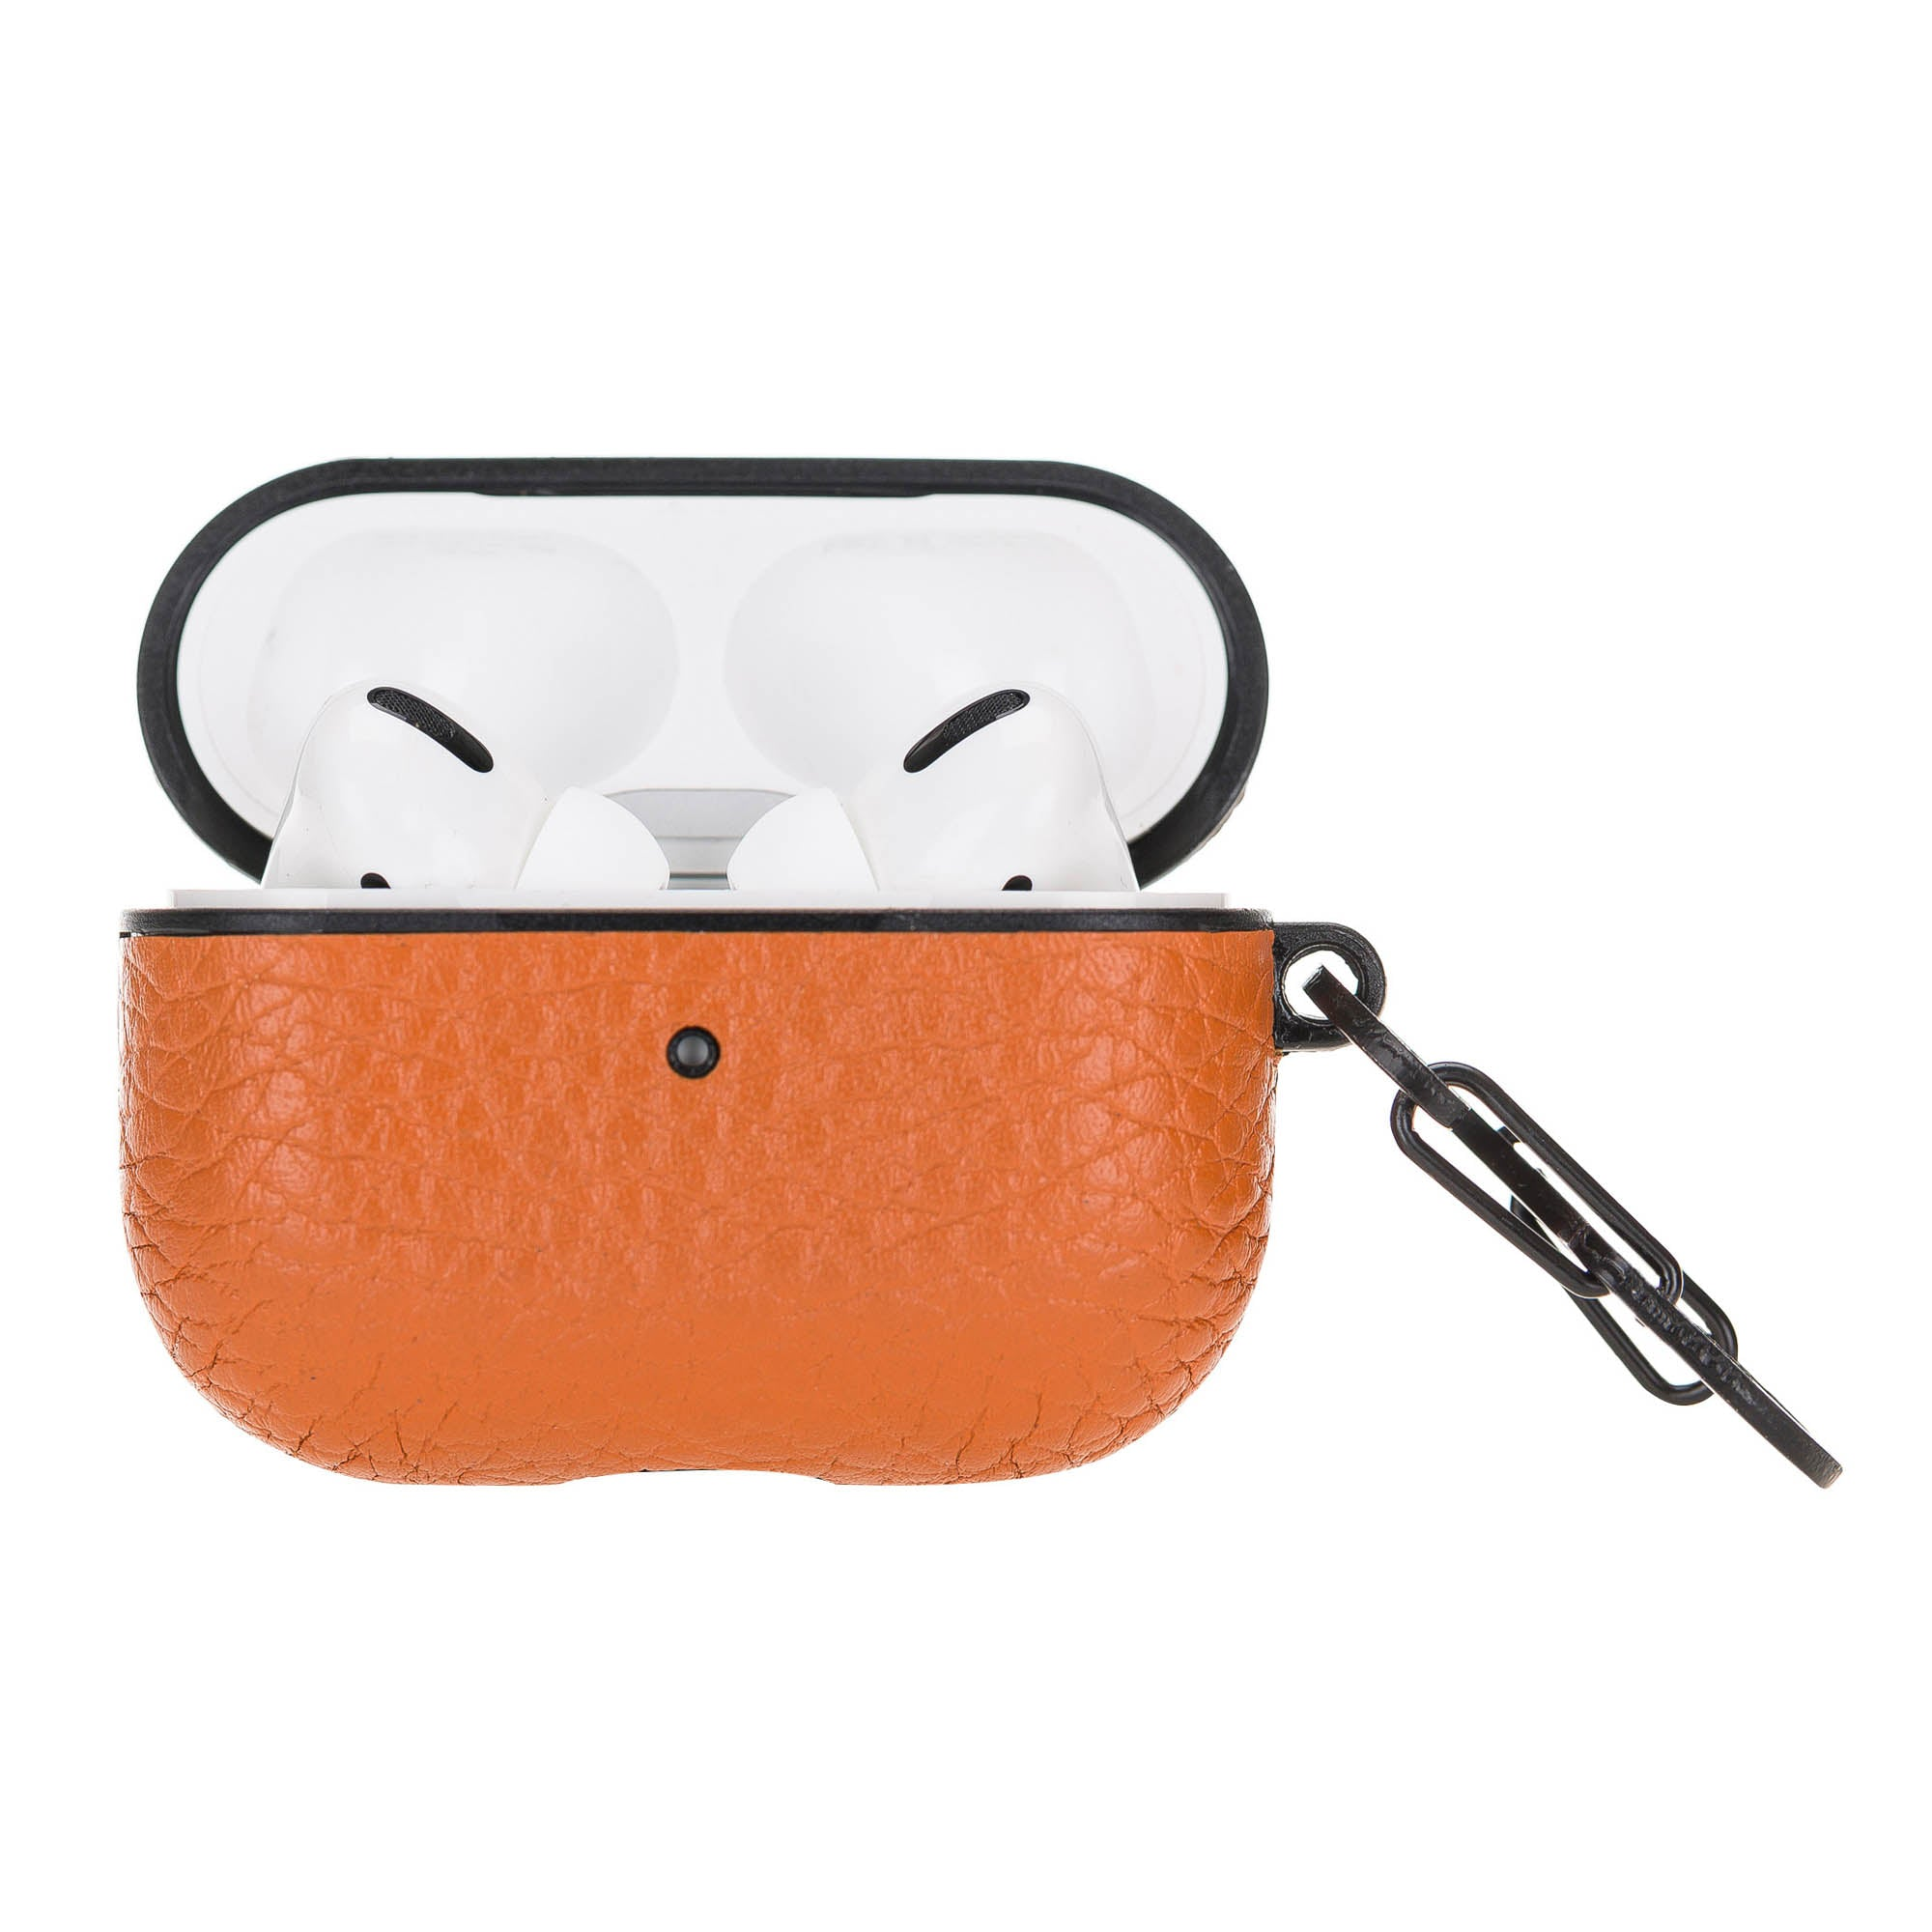 Juni Leather Capsule Case for AirPods Pro - ORANGE - saracleather